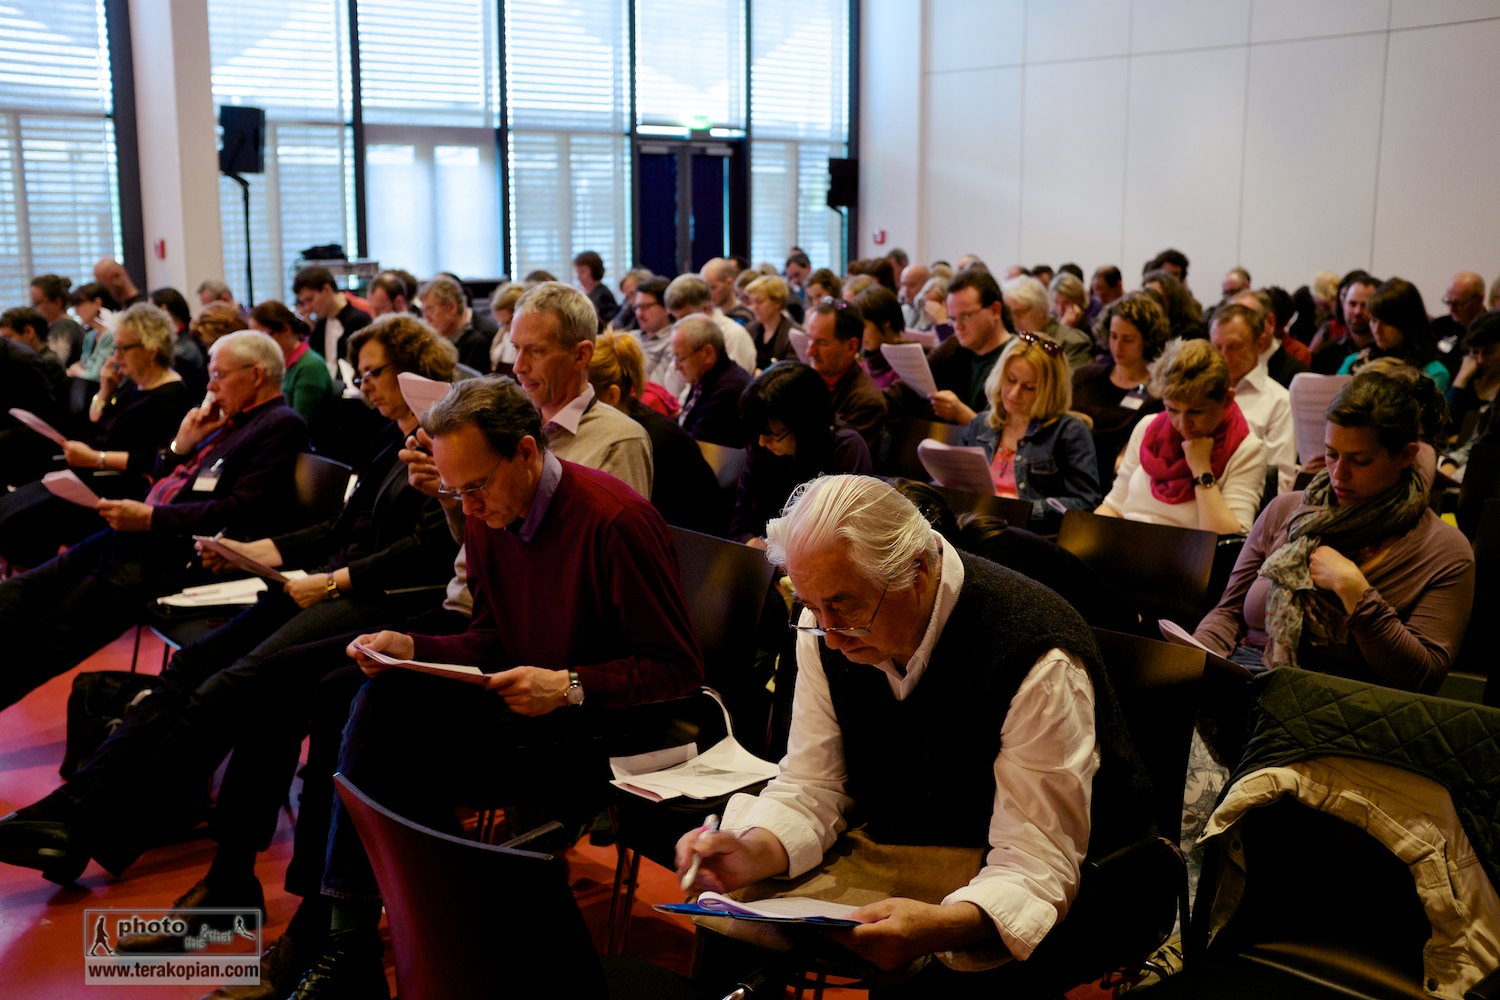 The main hall at the IFC (International Features Conference), Media Campus (Medienstifftung der Sparkasse Leipzig), Poetenweg, Leipzig, Germany. The delegates listen to features programmes which will then be discussed in smaller groups. May 14, 2014. Photo: Photo: Edmond Terakopian